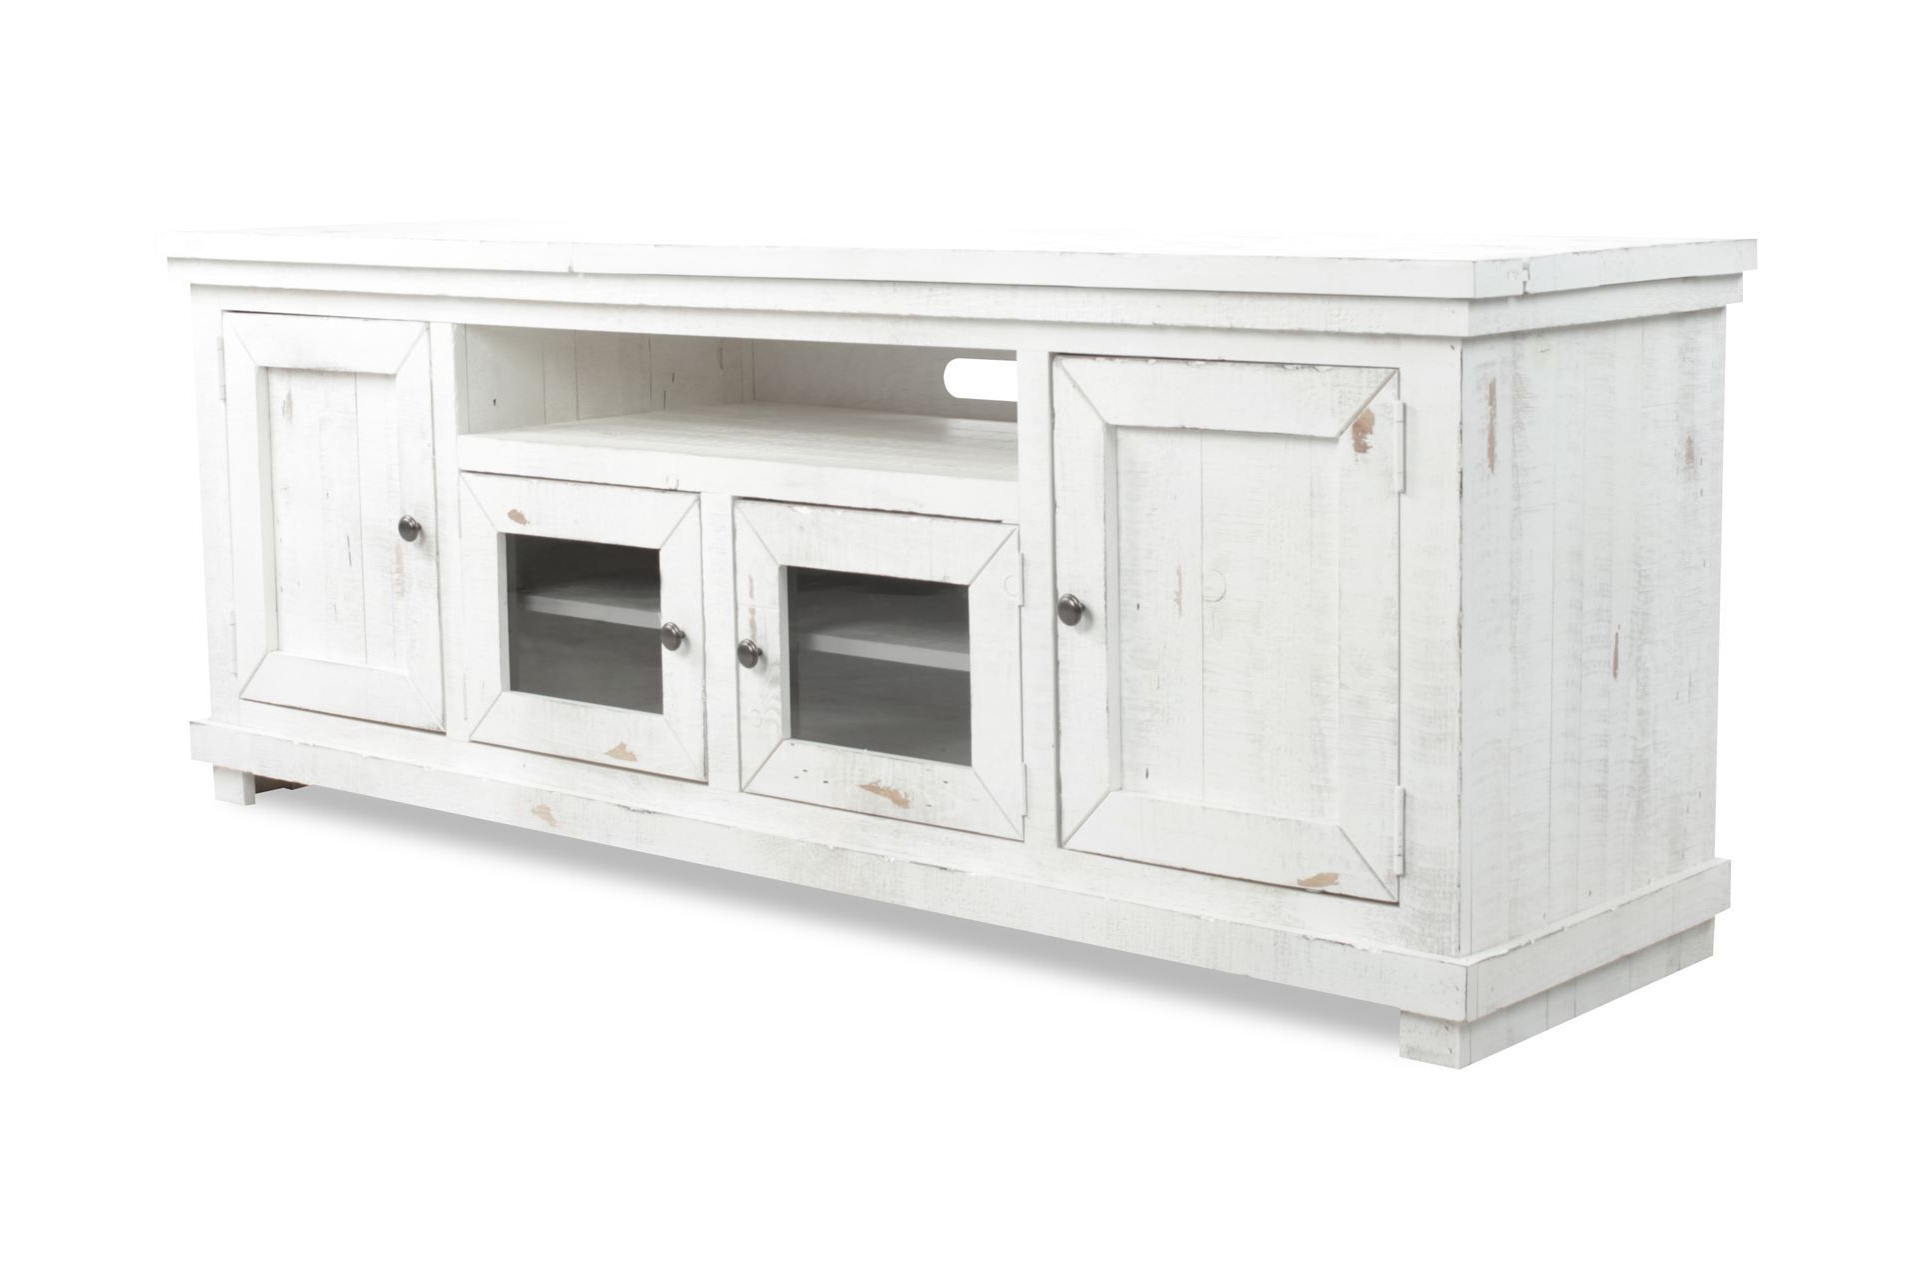 Sinclair White 74 Inch Tv Stand | Home Ideas | Pinterest | Living Inside Sinclair White 74 Inch Tv Stands (View 3 of 20)